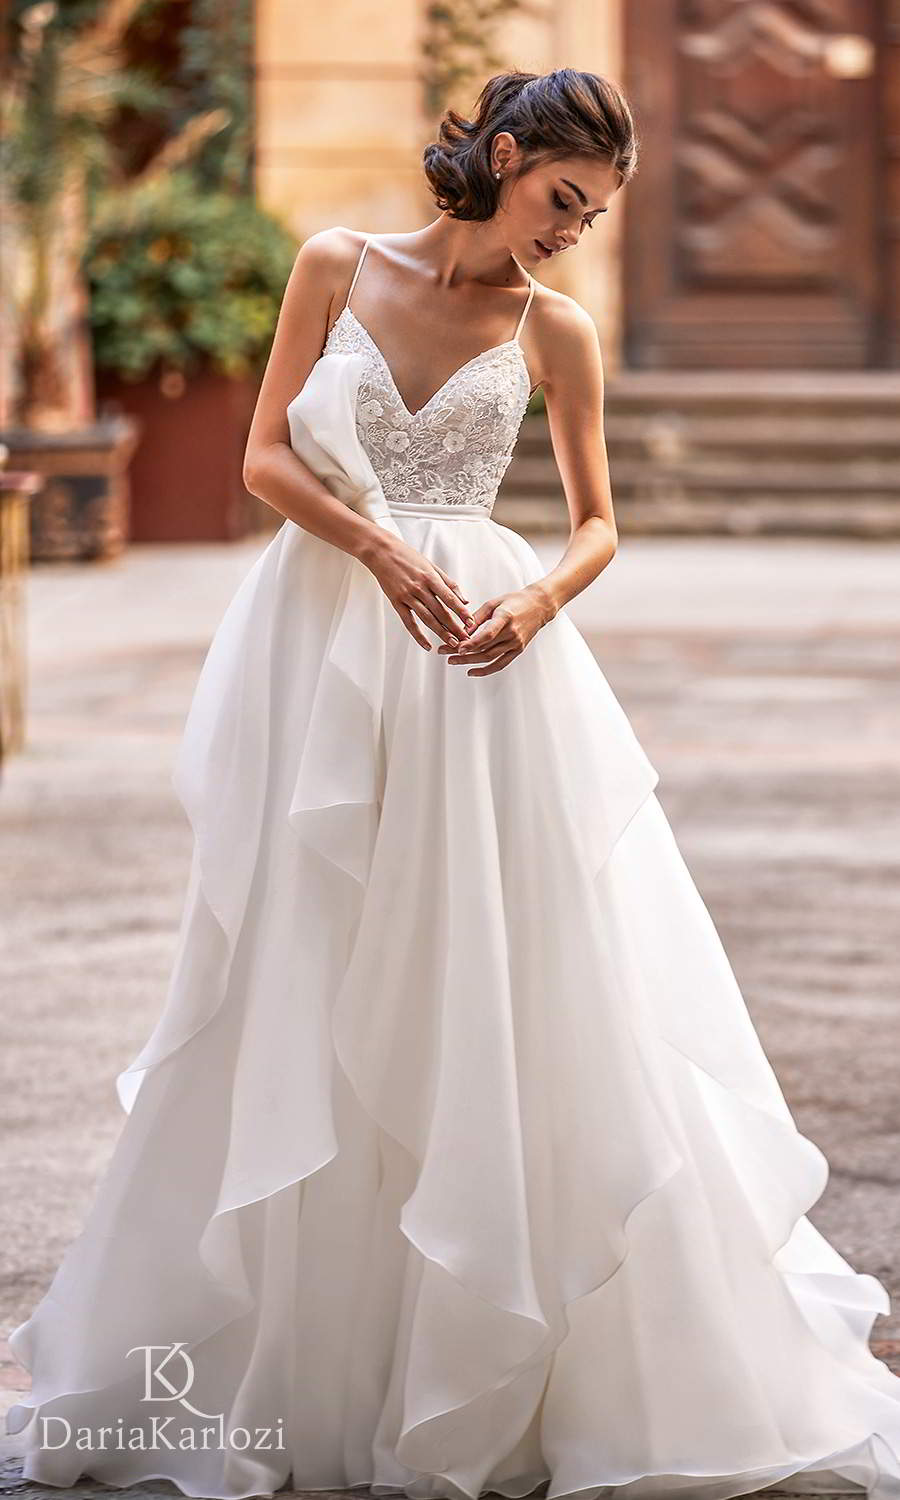 daria karlozi 2021 graceful dream bridal sleeveless thin straps sweetheart neckline embellished bodice clean bodice a line ball gown wedding dress chapel train (brilliance) mv